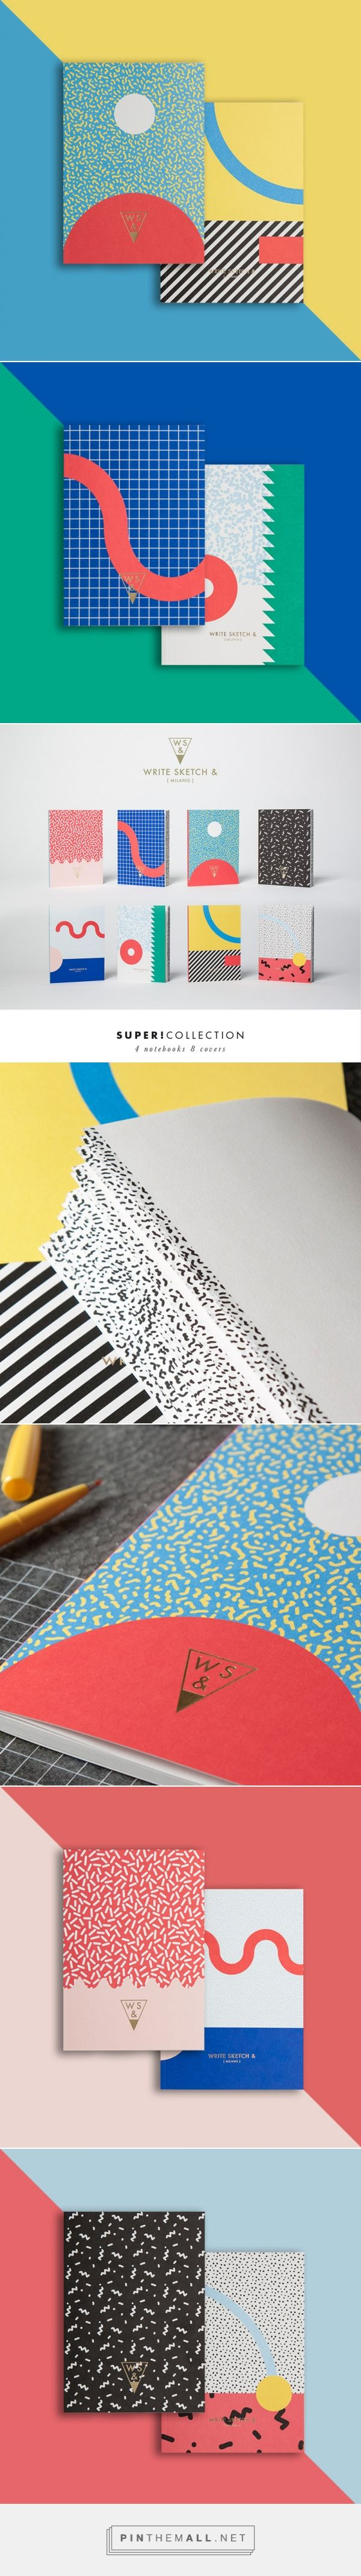 Notebooks. Design by Officemilano.